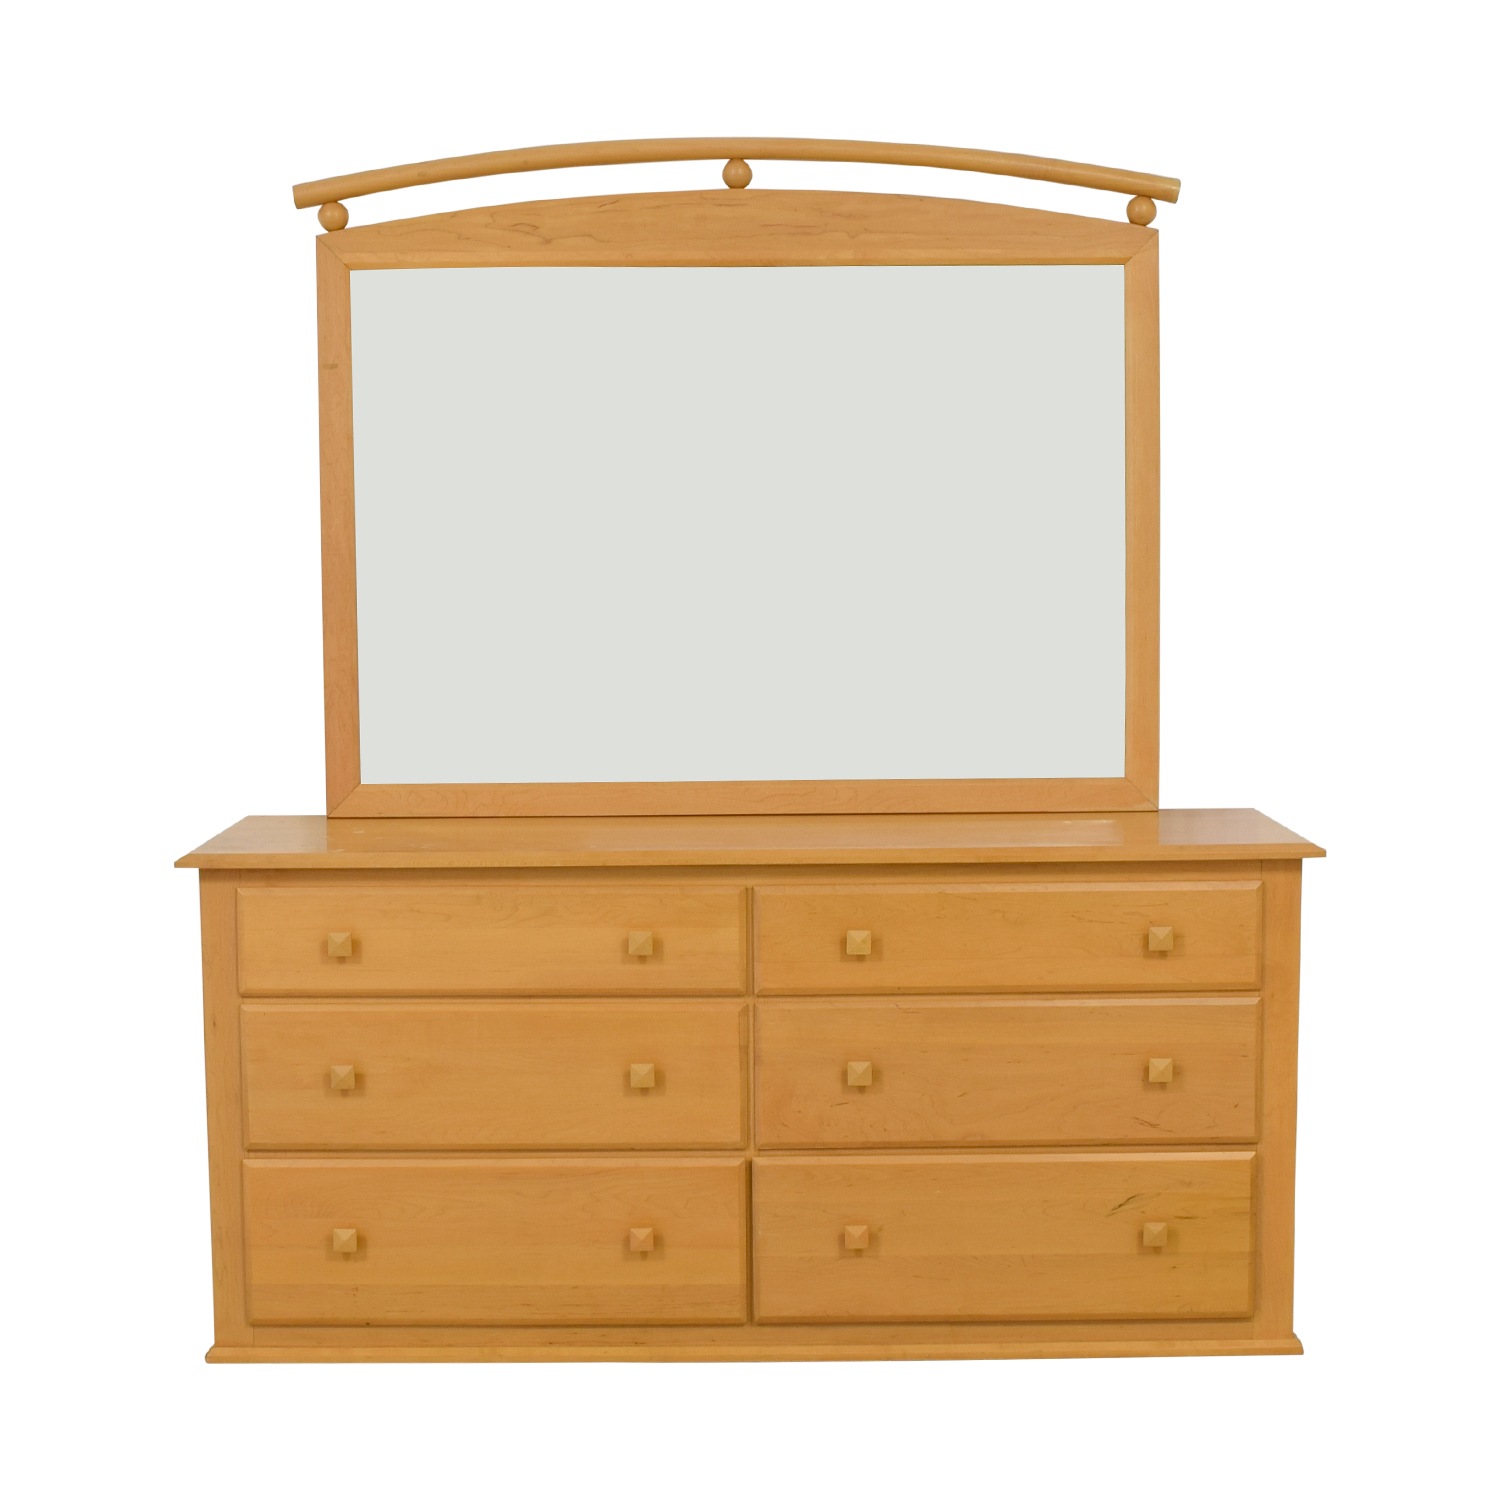 shop Ethan Allen American Dimensions Natural Six-Drawer Dresser with Mirror Ethan Allen